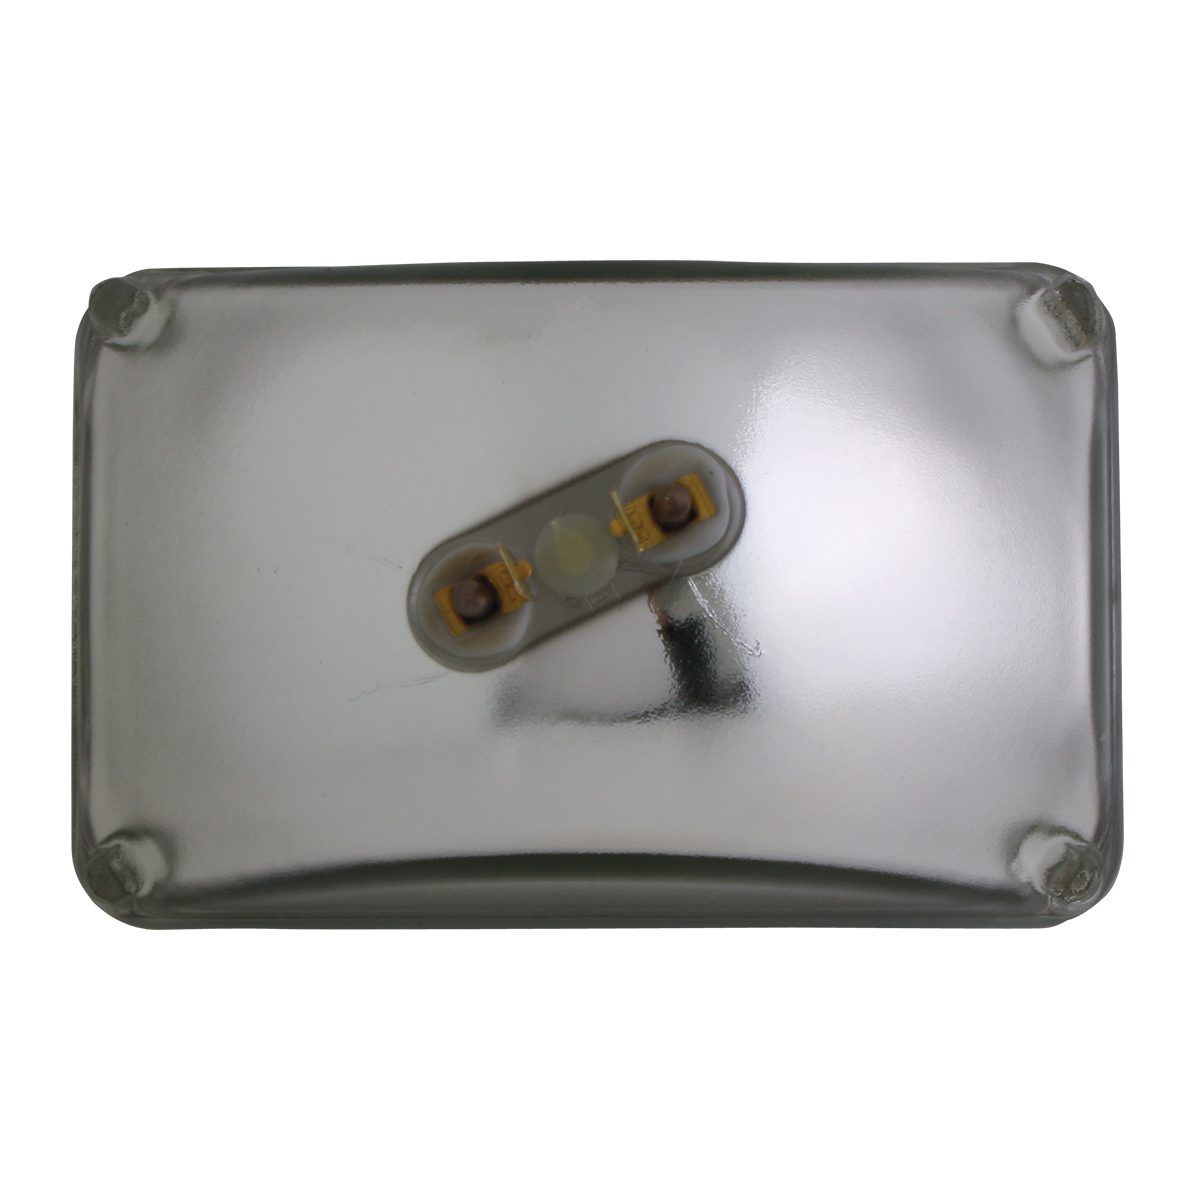 #80428 Rectangular Sealed Beam #H4651 Headlight - Back View